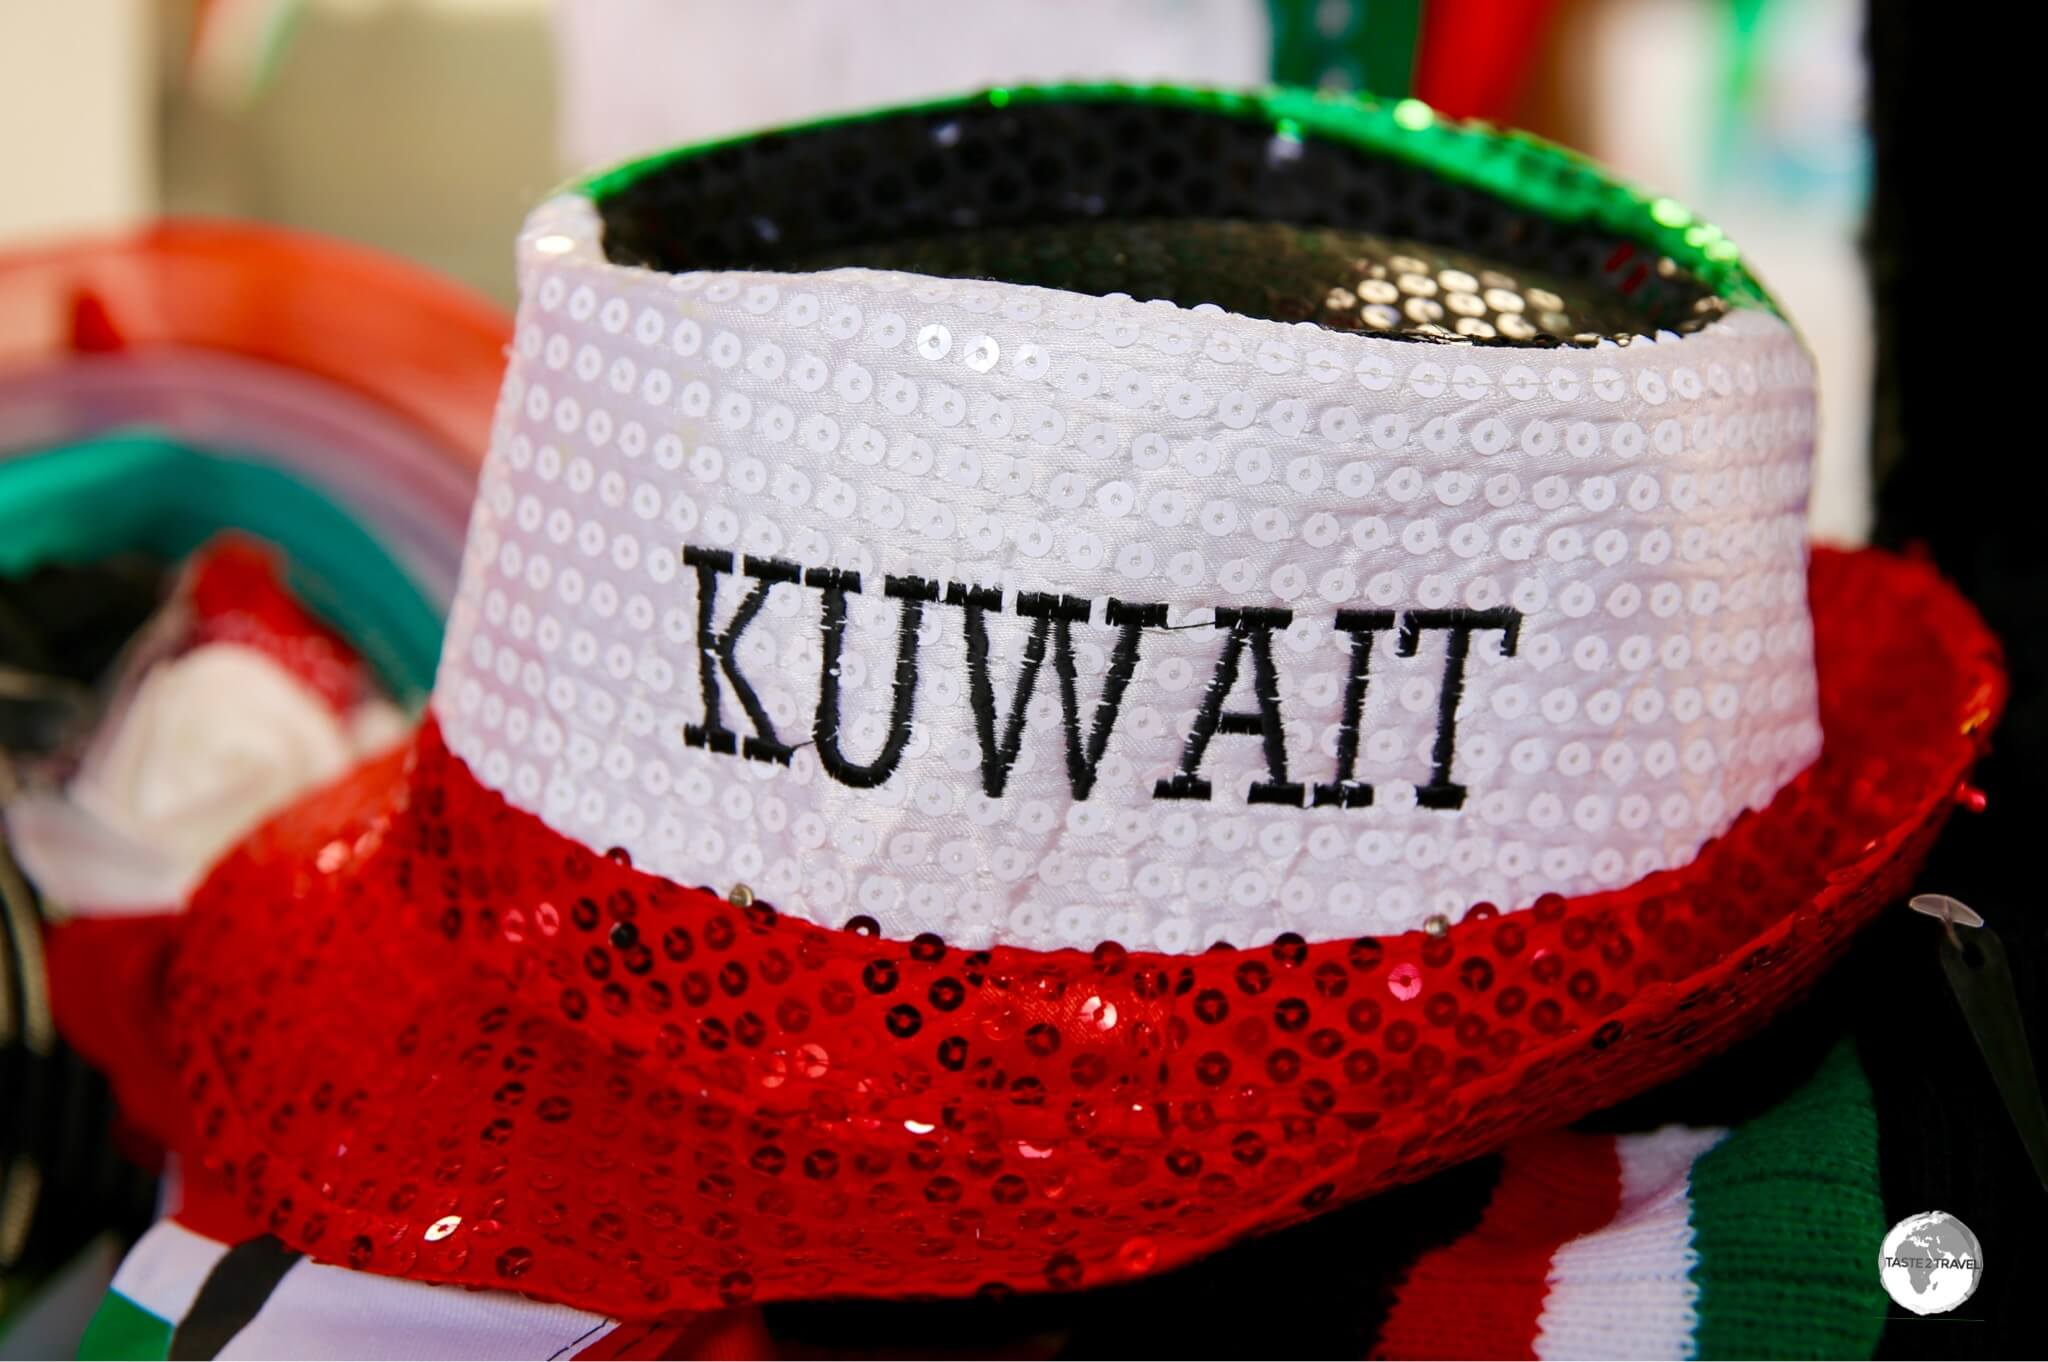 Kuwaitis are very patriotic, with their flag featured on all sorts of merchandise.